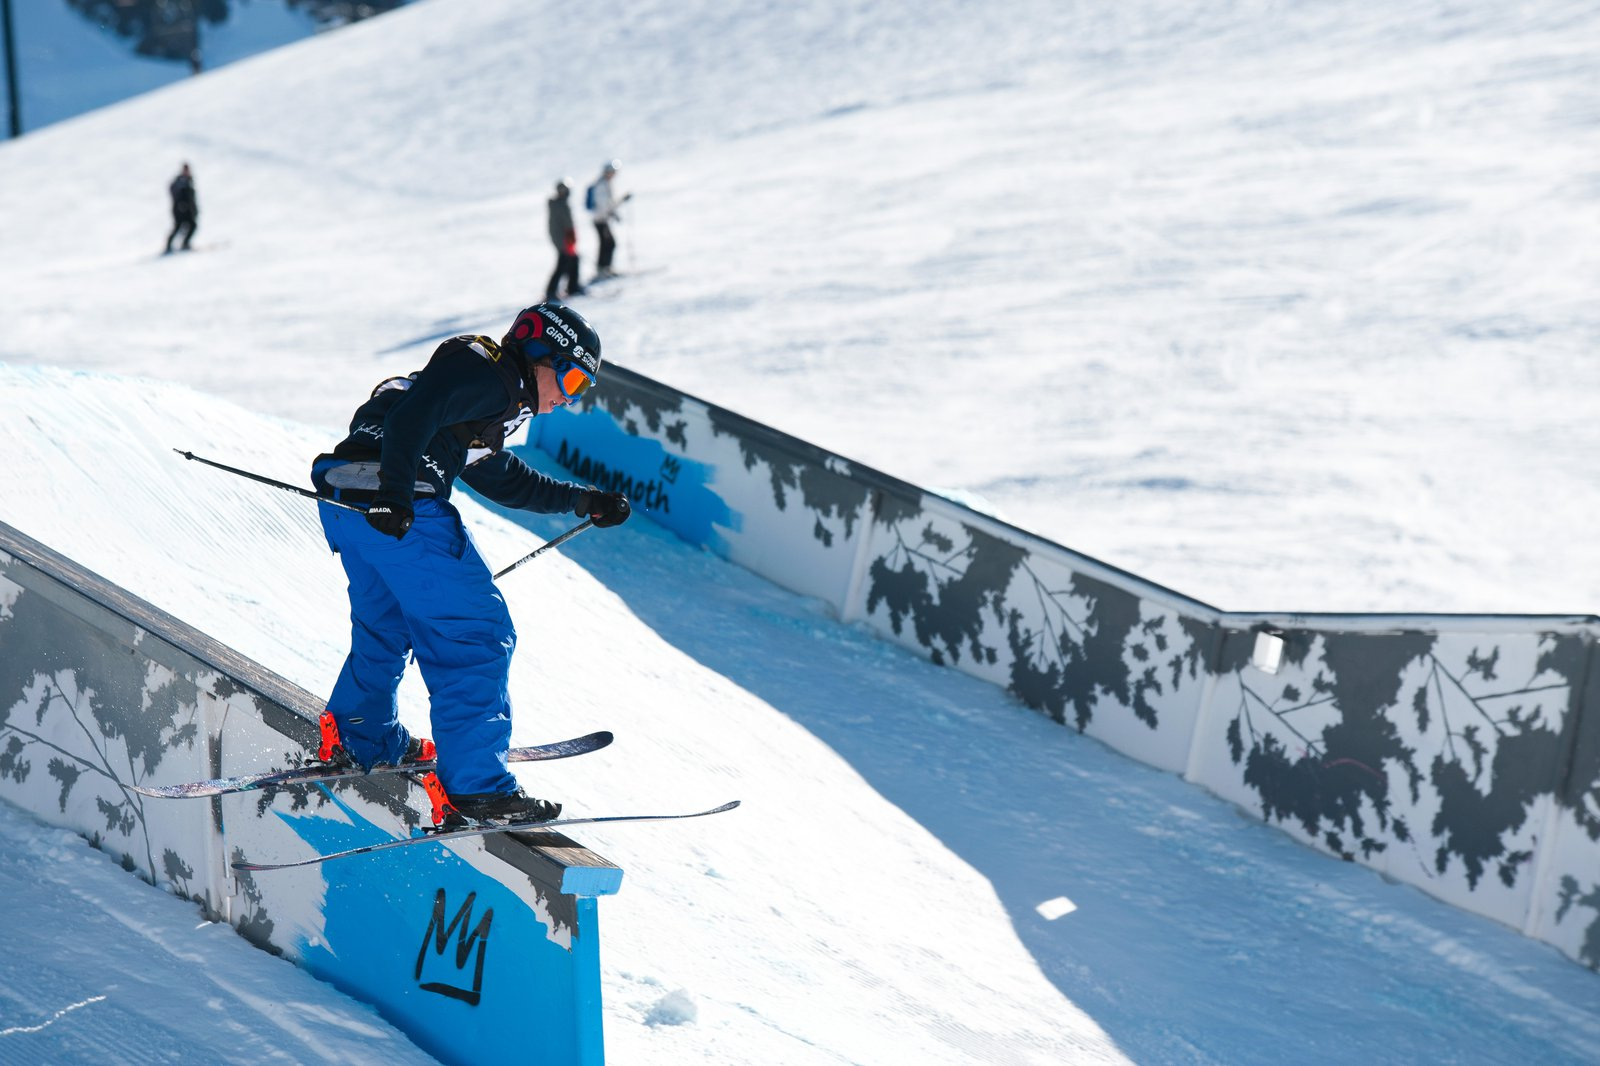 US Freeskiing Grand Prix - Men's Slopestyle